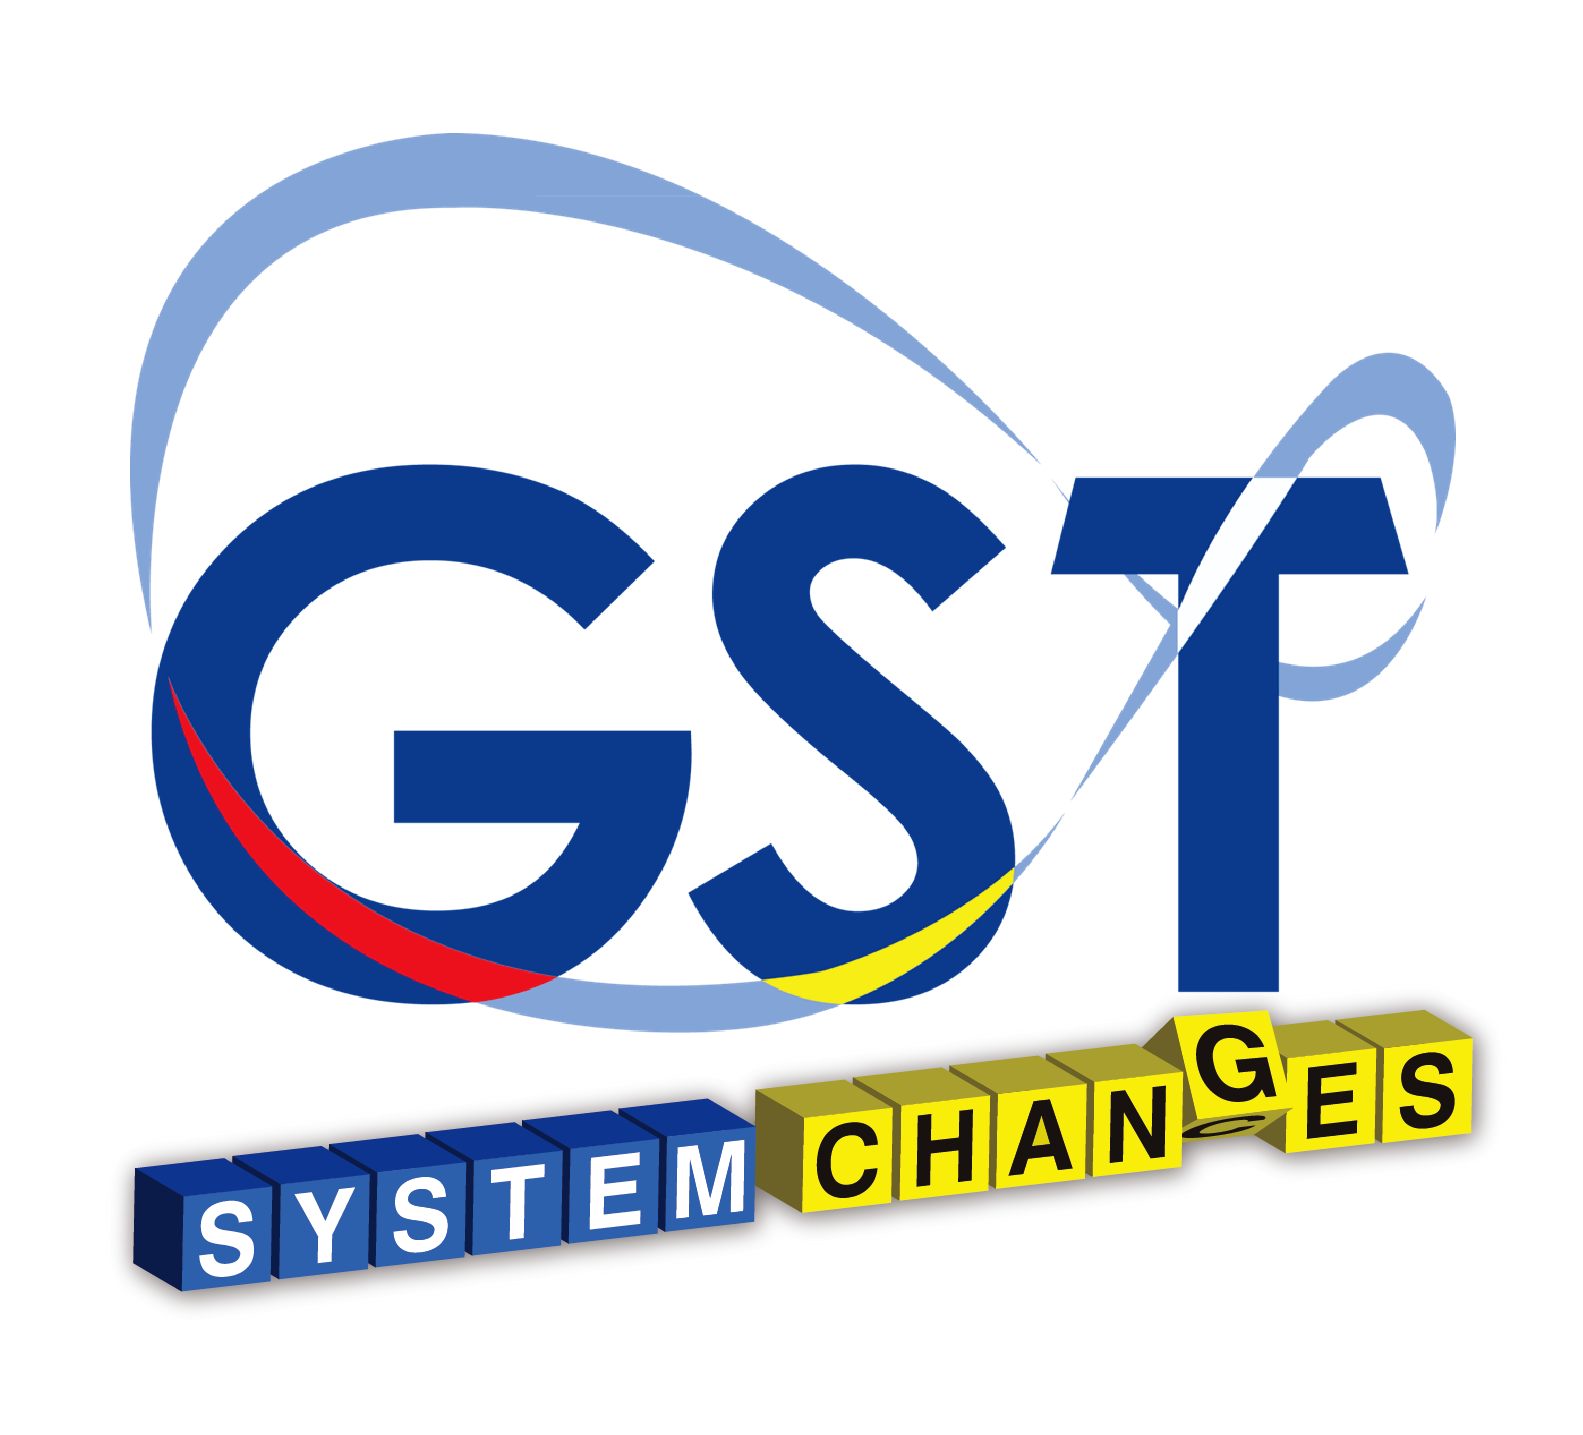 GST System Changes